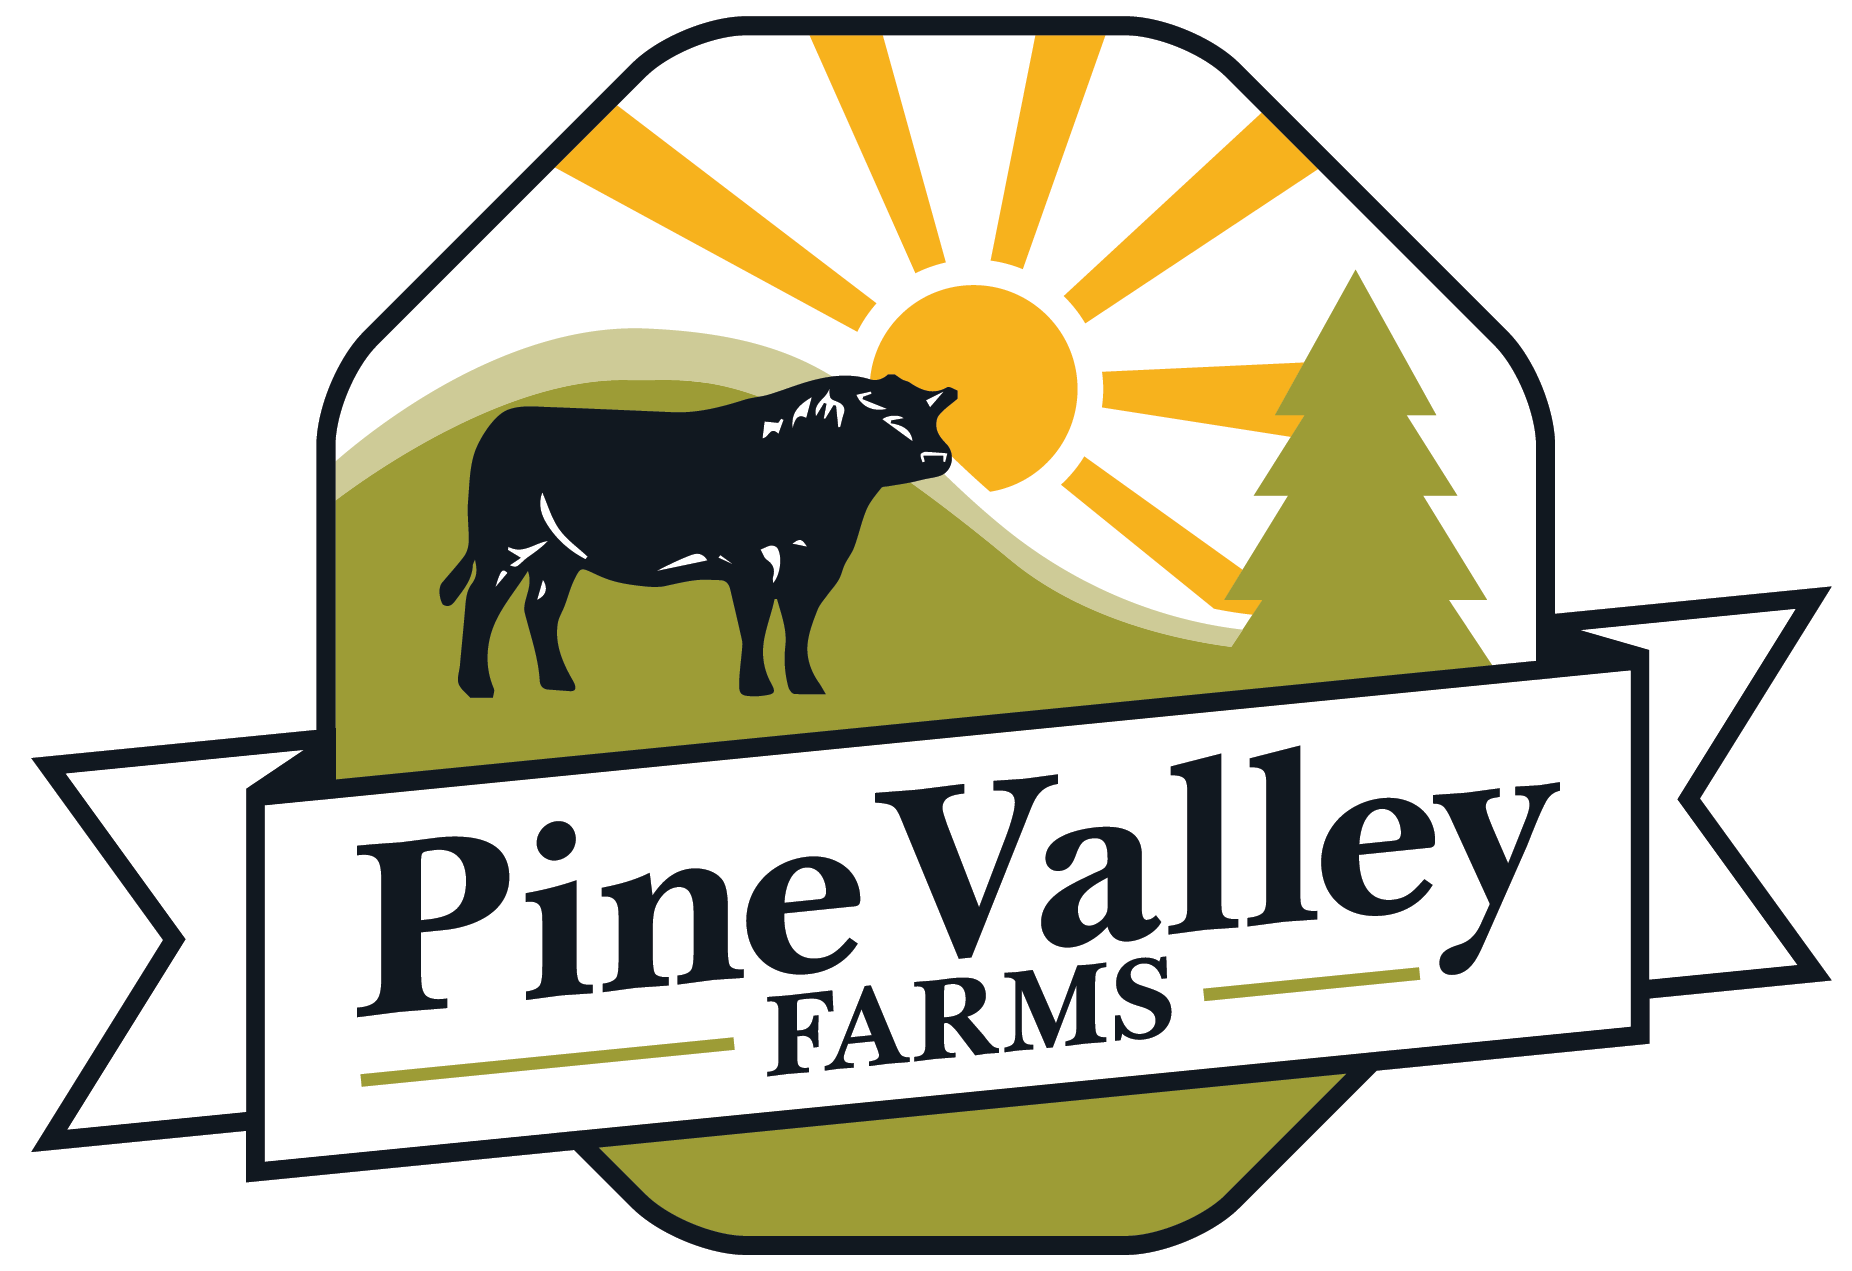 Pine Valley Farms Premium Beef